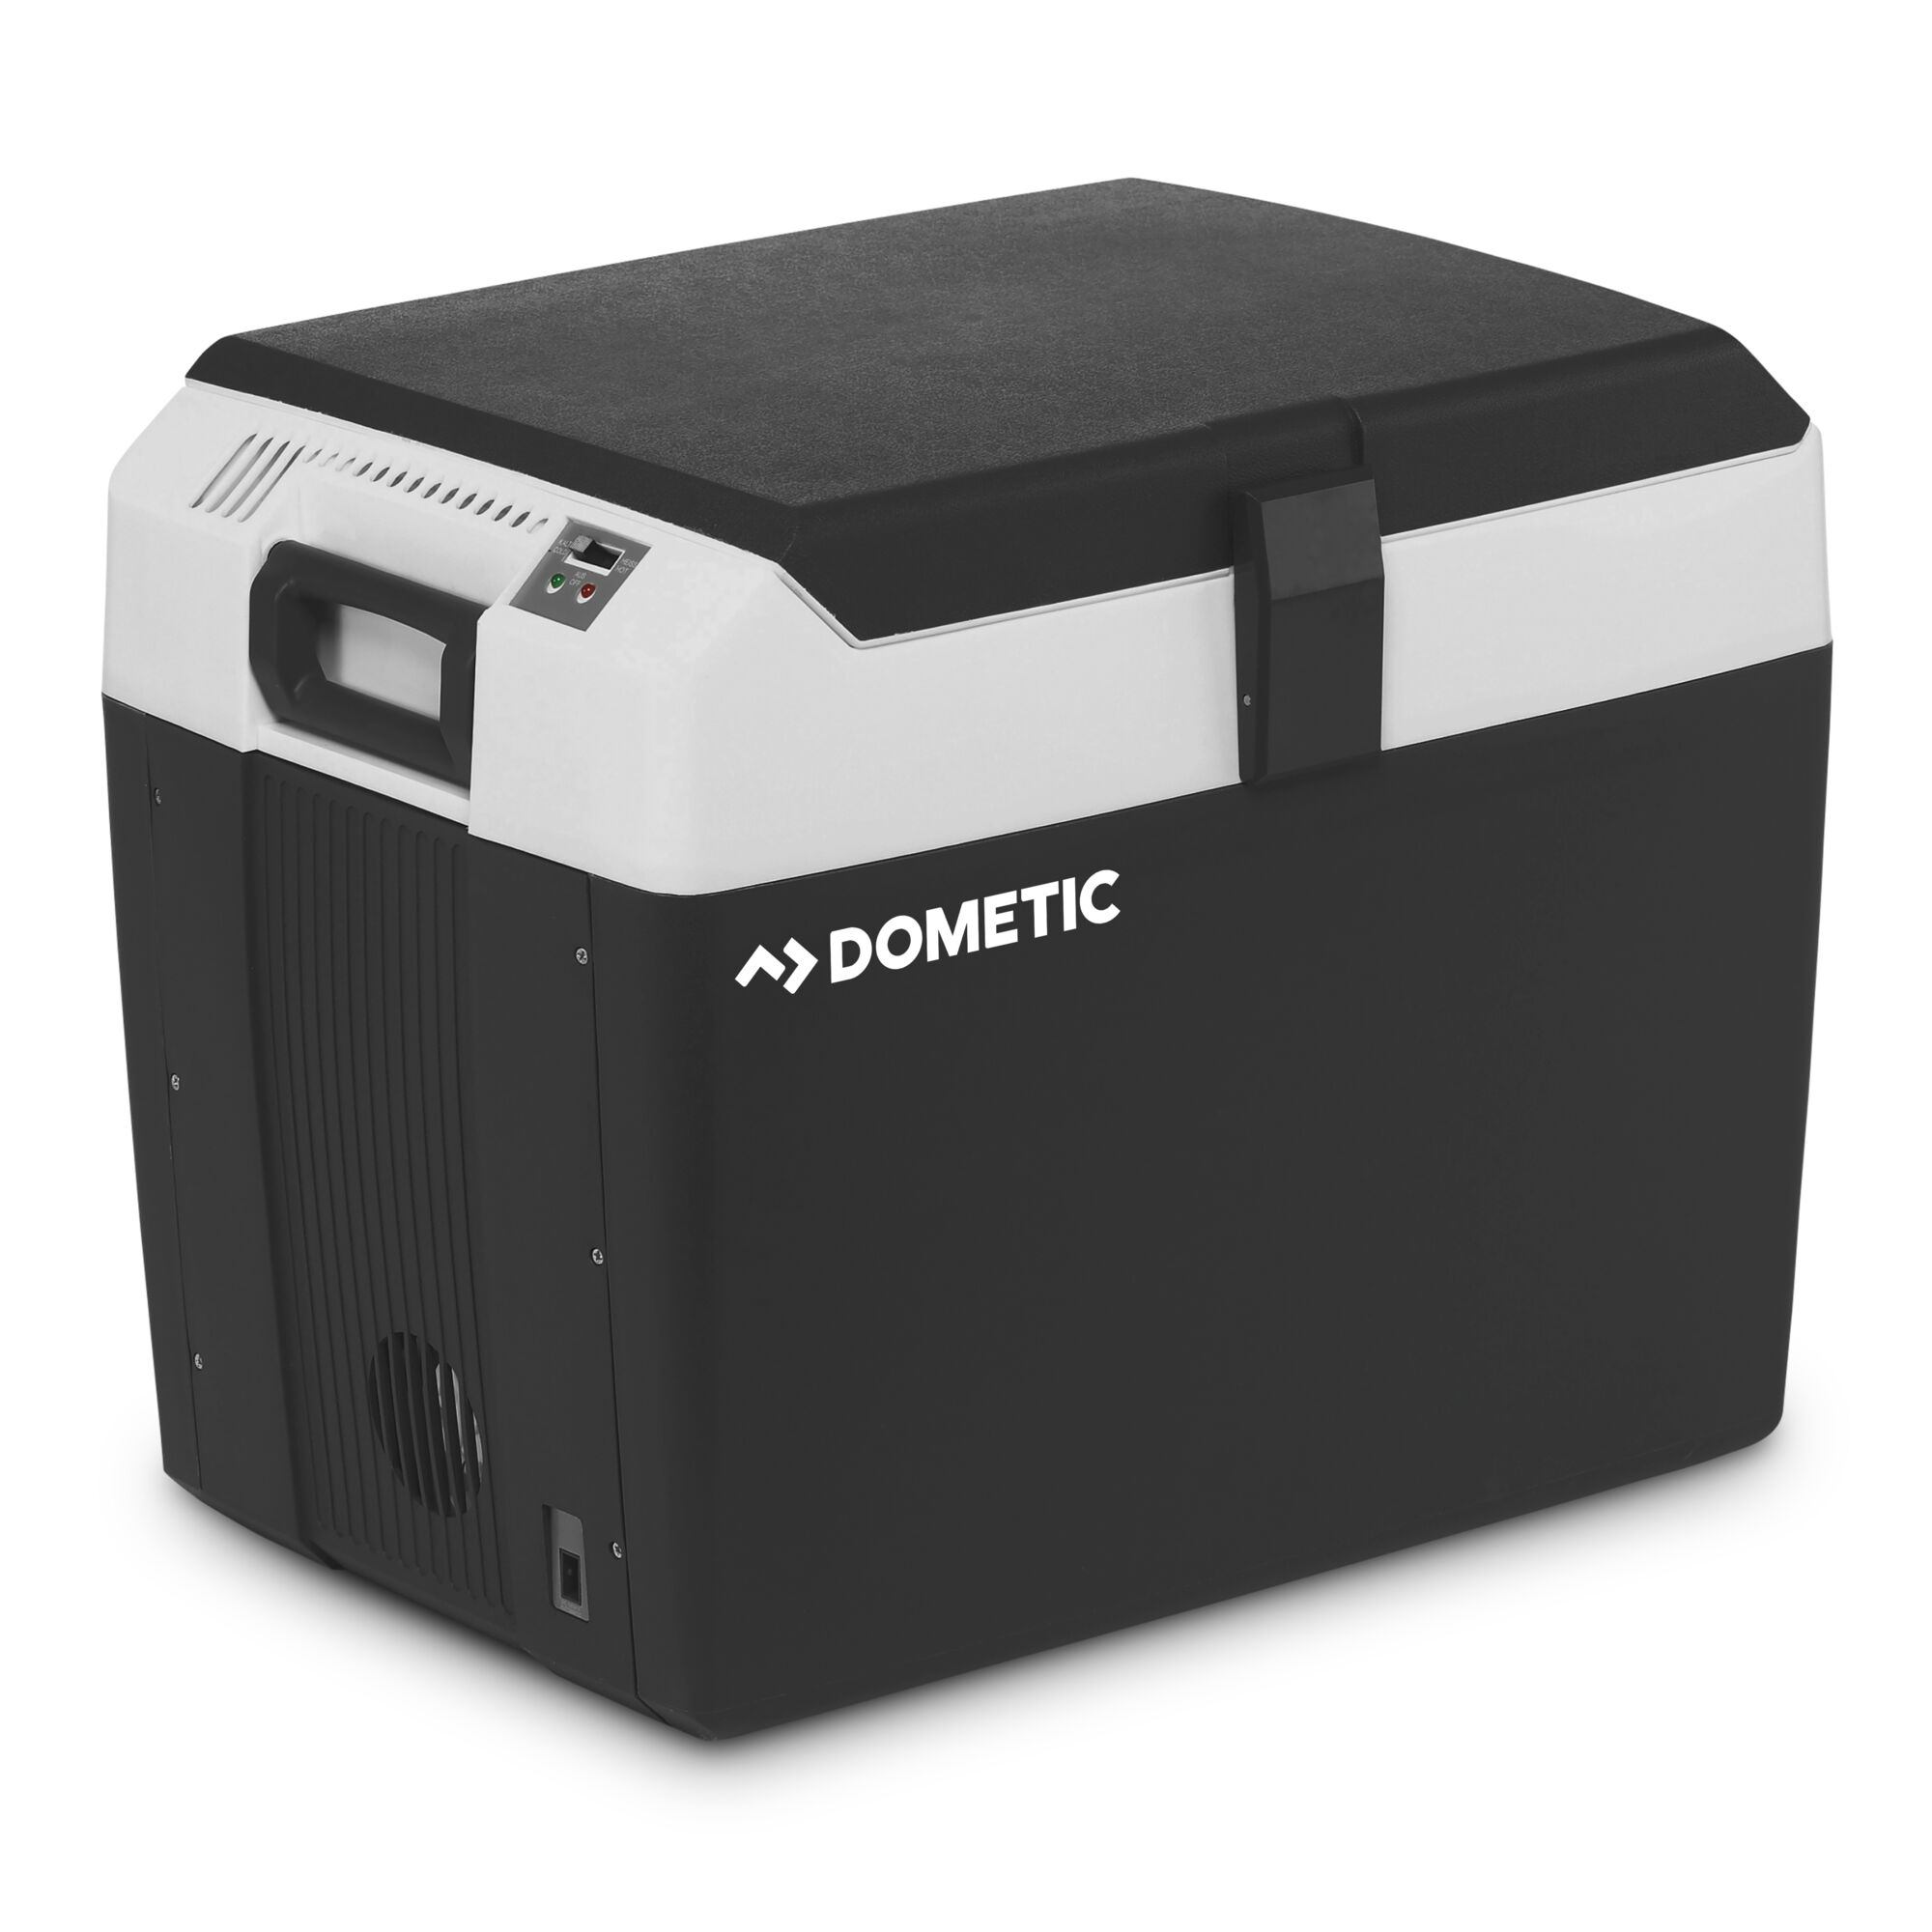 Dometic Waeco Kühlbox Elektrokühlbox Warmhaltebox CoolFun CR-28